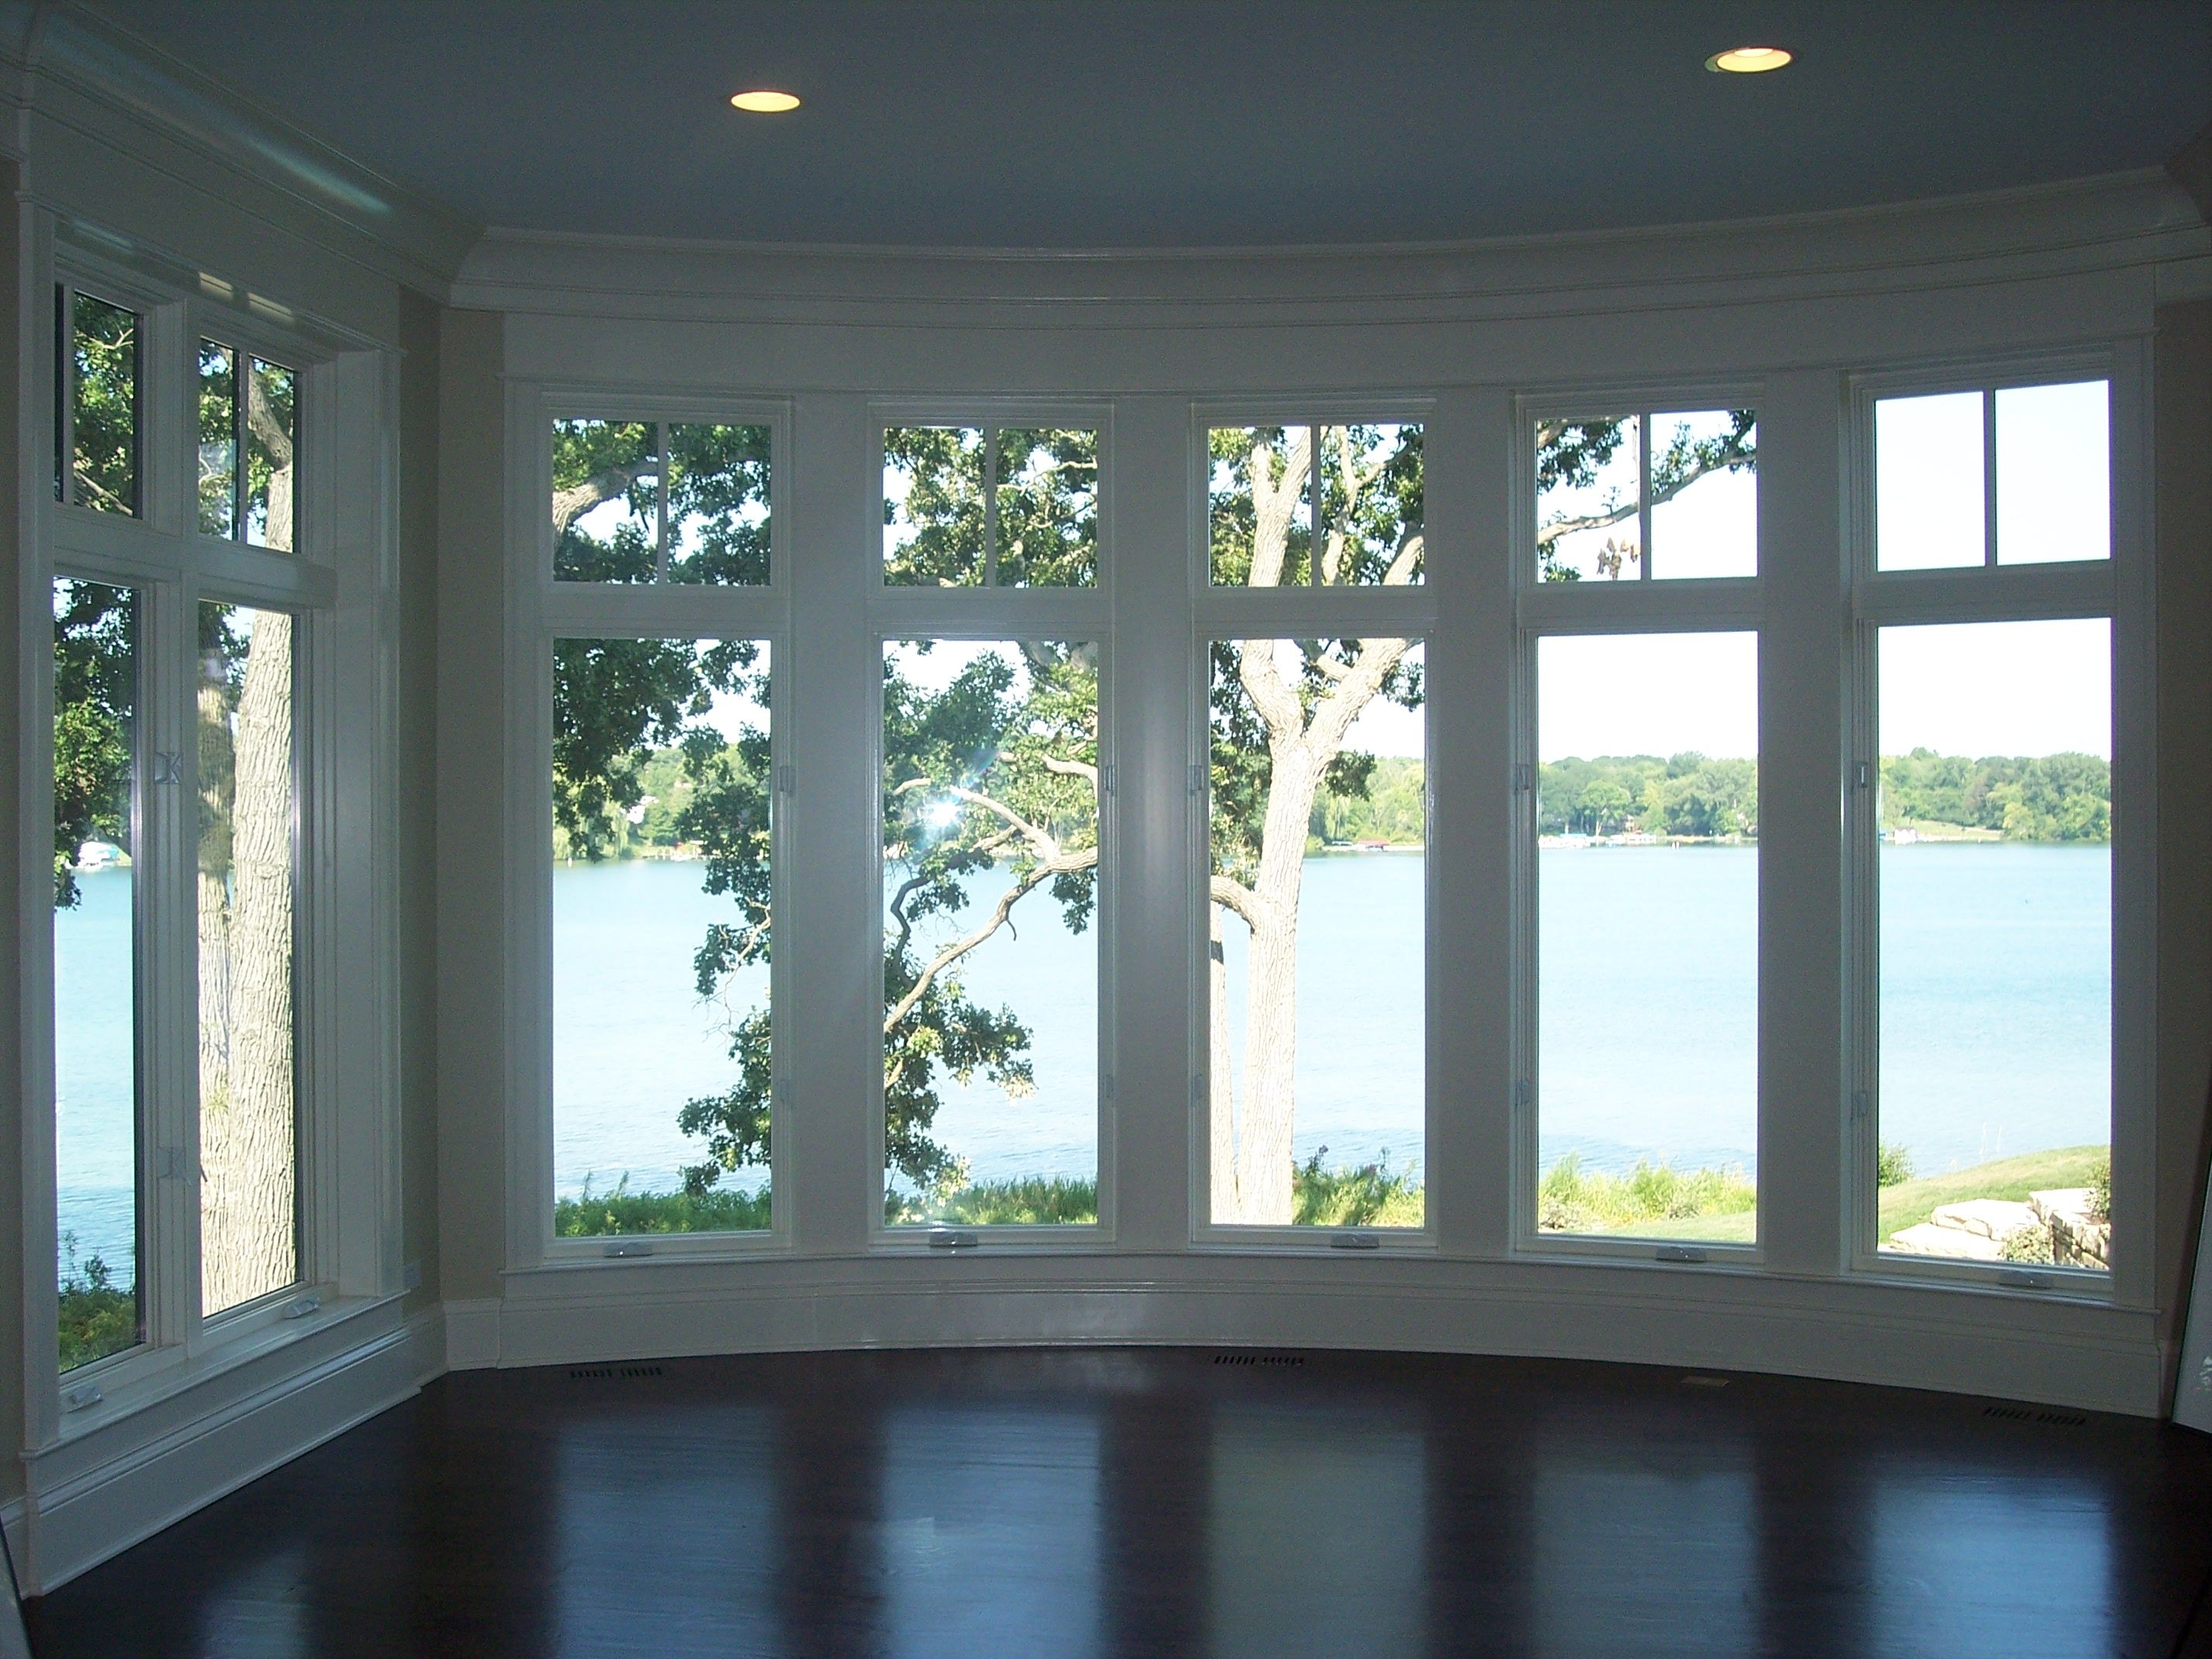 2012 parade of homes winner genoa city wi luxury lake Lake house windows